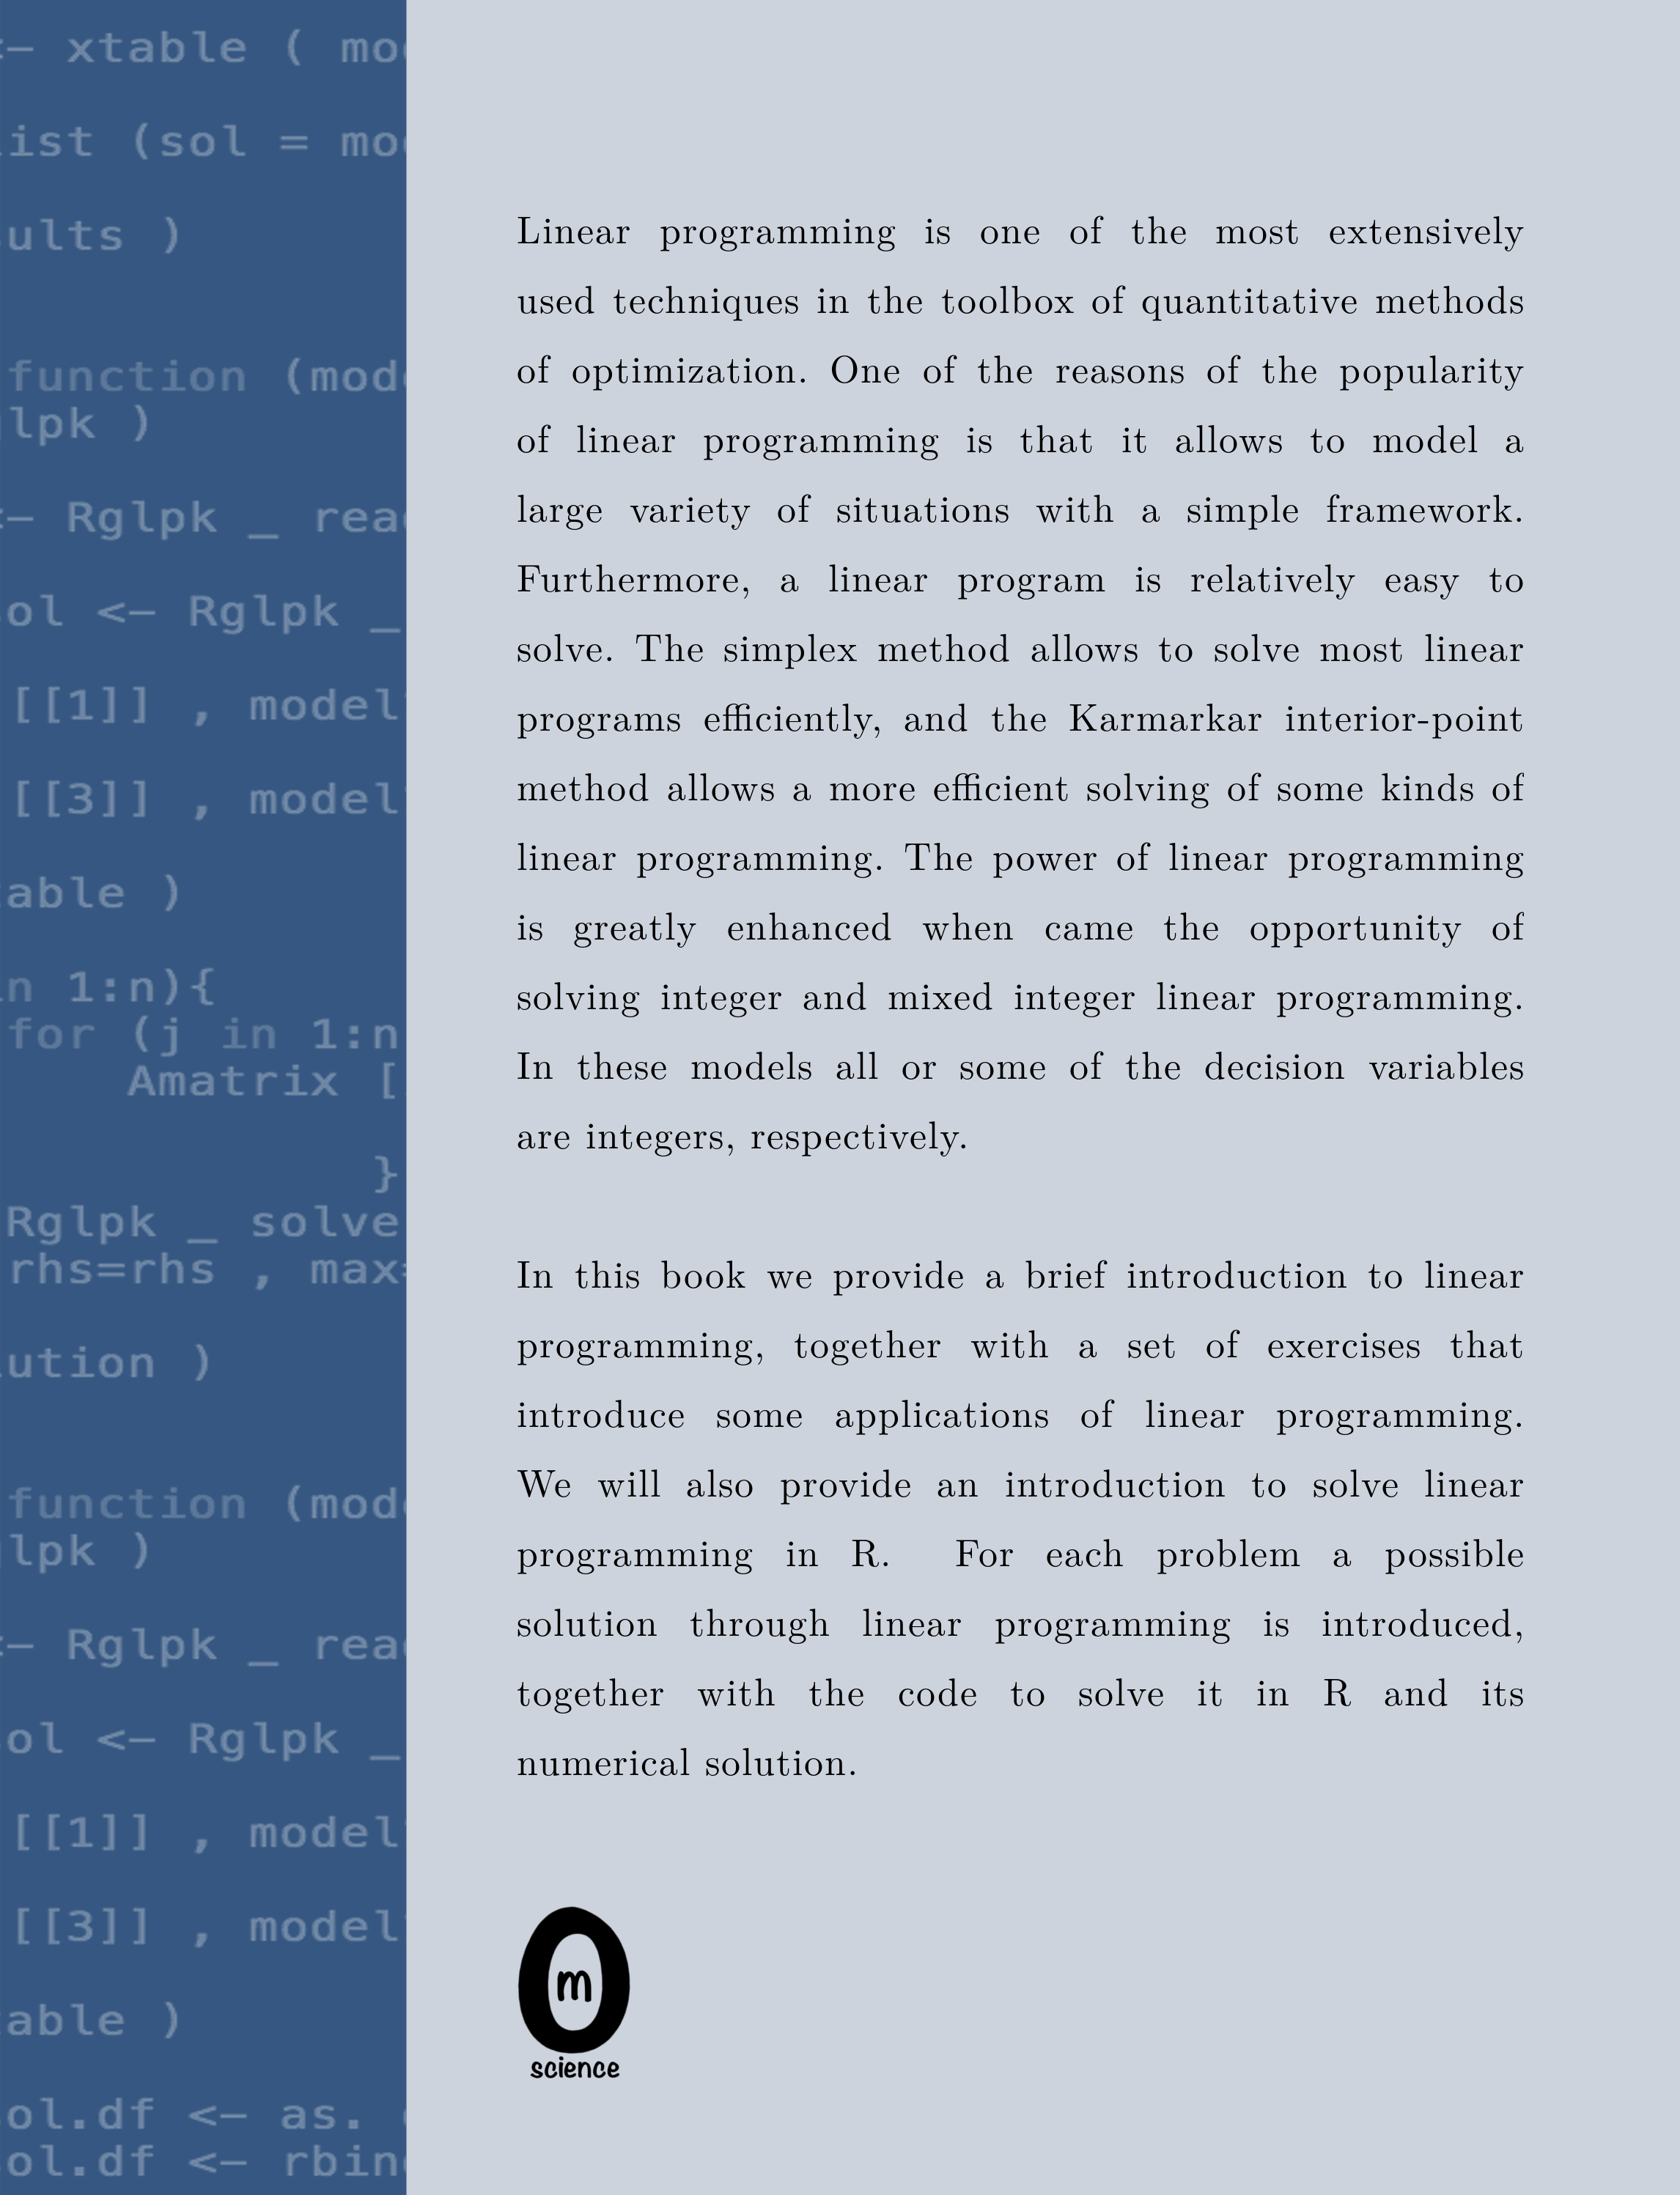 Modeling and solving linear programming with R  Jose M Sallan Oriol